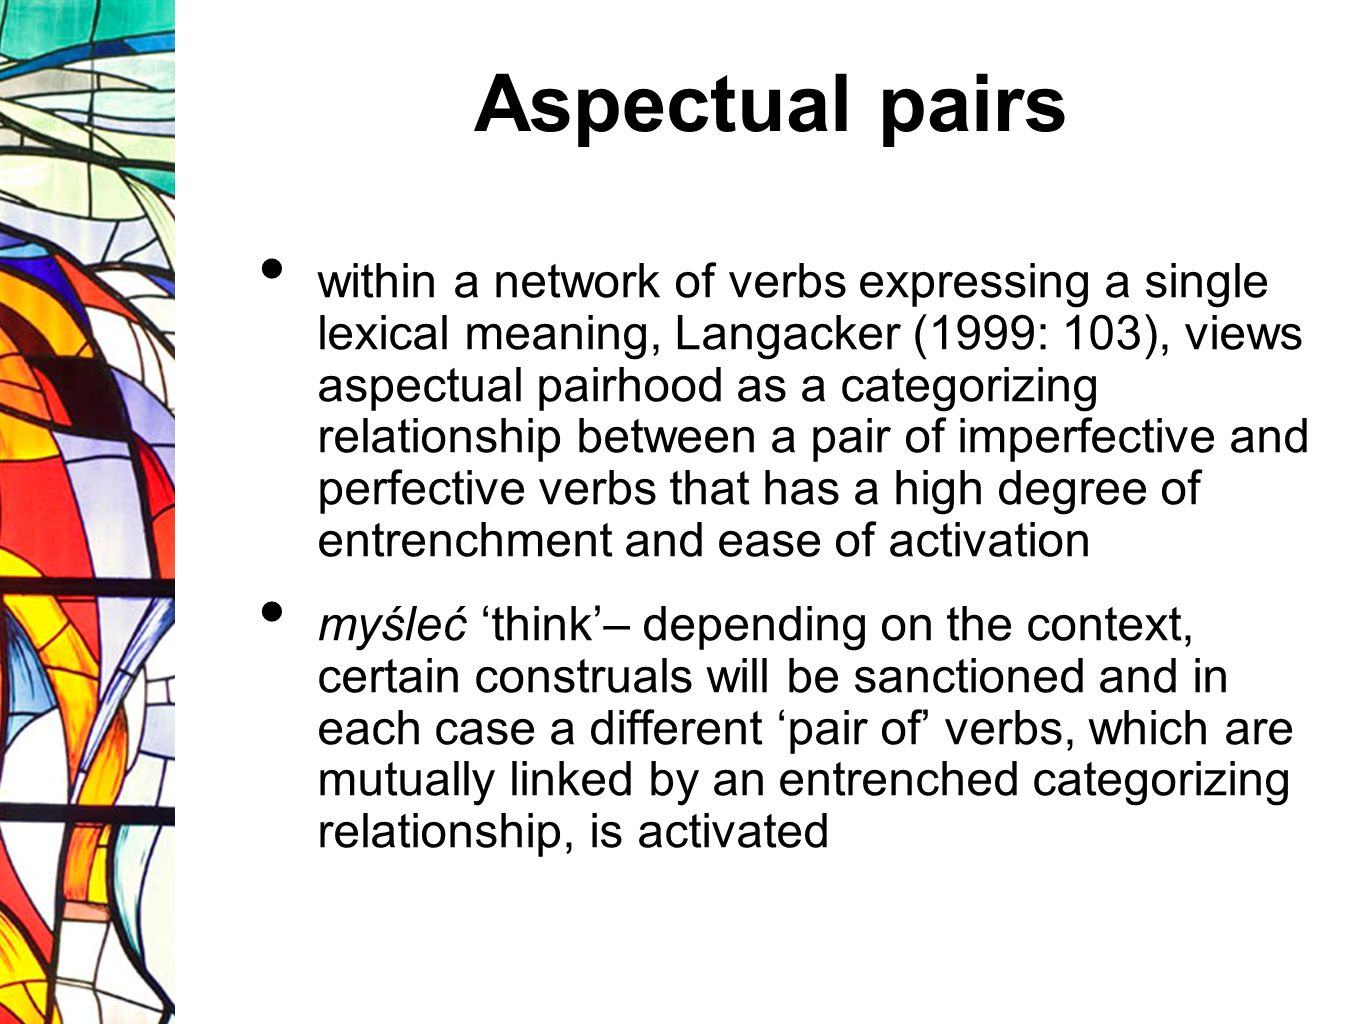 Aspectual pairs within a network of verbs expressing a single lexical meaning, Langacker (1999: 103), views aspectual pairhood as a categorizing relationship between a pair of imperfective and perfective verbs that has a high degree of entrenchment and ease of activation myśleć think– depending on the context, certain construals will be sanctioned and in each case a different pair of verbs, which are mutually linked by an entrenched categorizing relationship, is activated